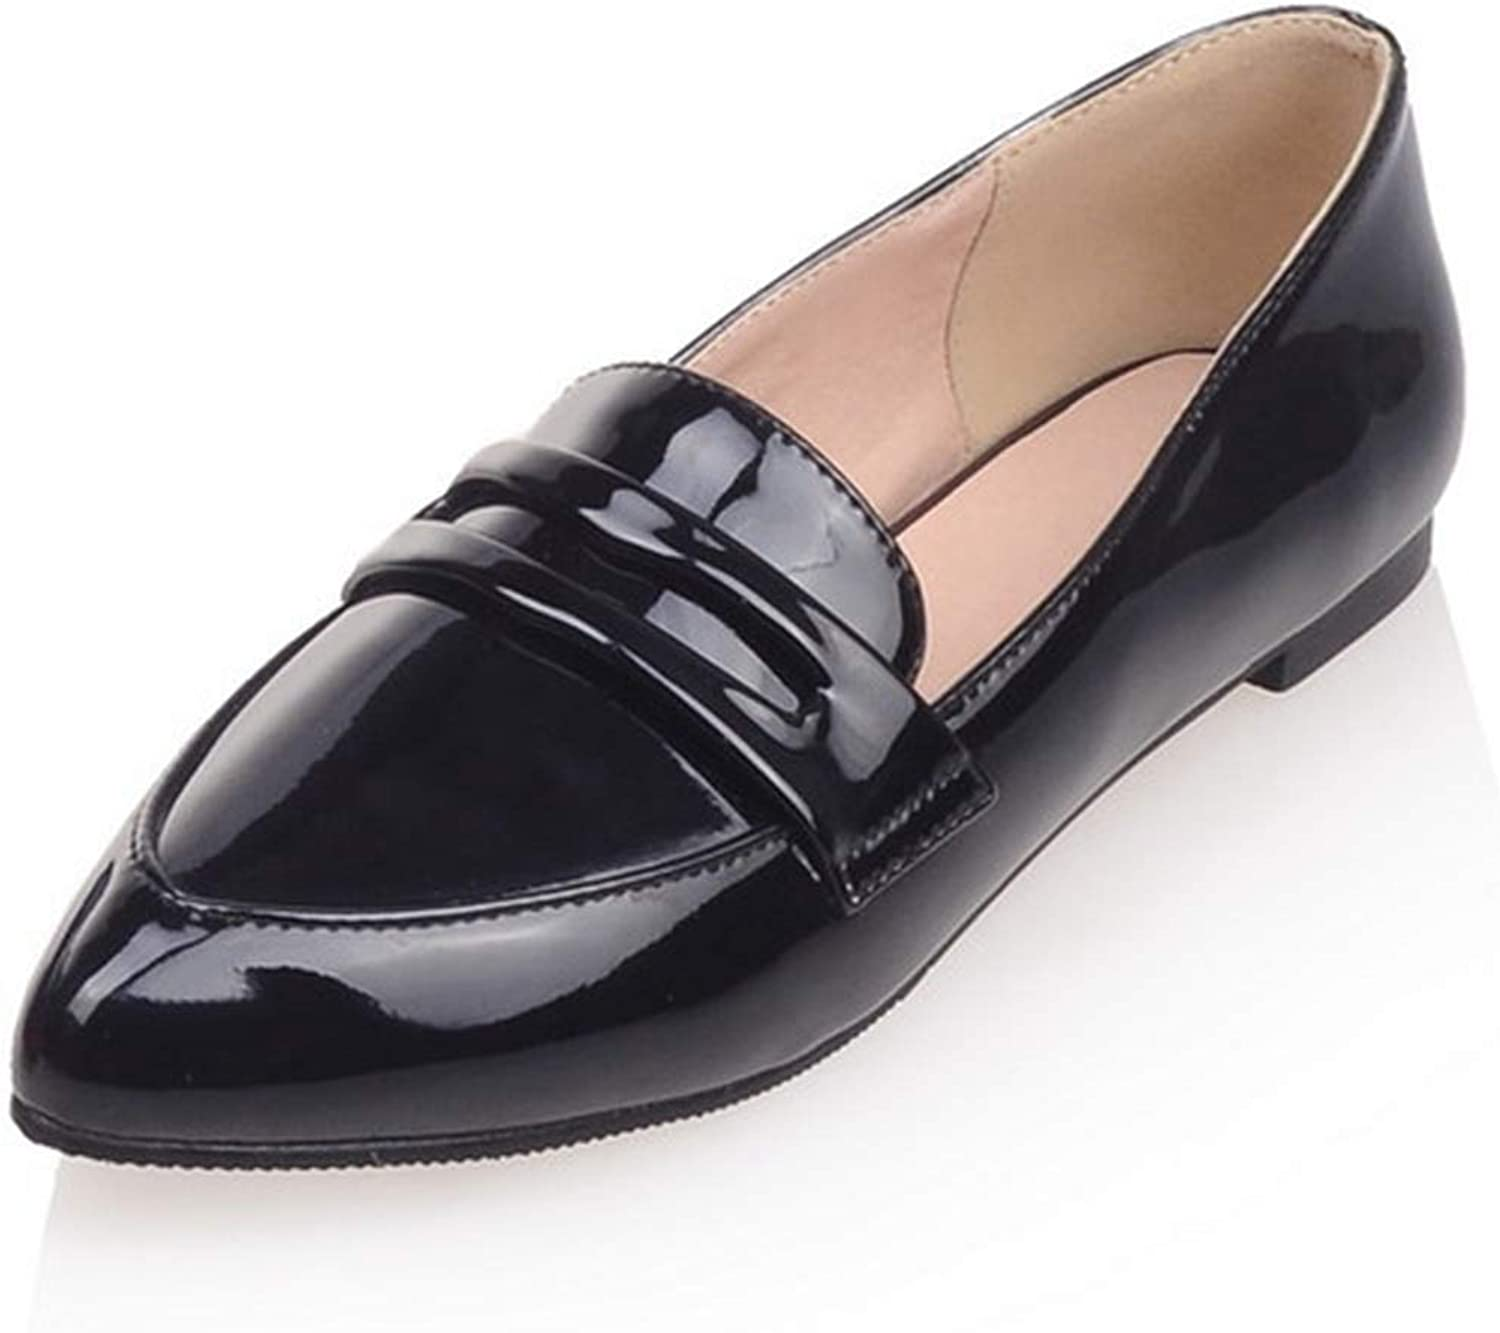 Female Flat shoes Pointy Toe Leather Ladies Loafers Women Bag shoes Low Top Square Heel